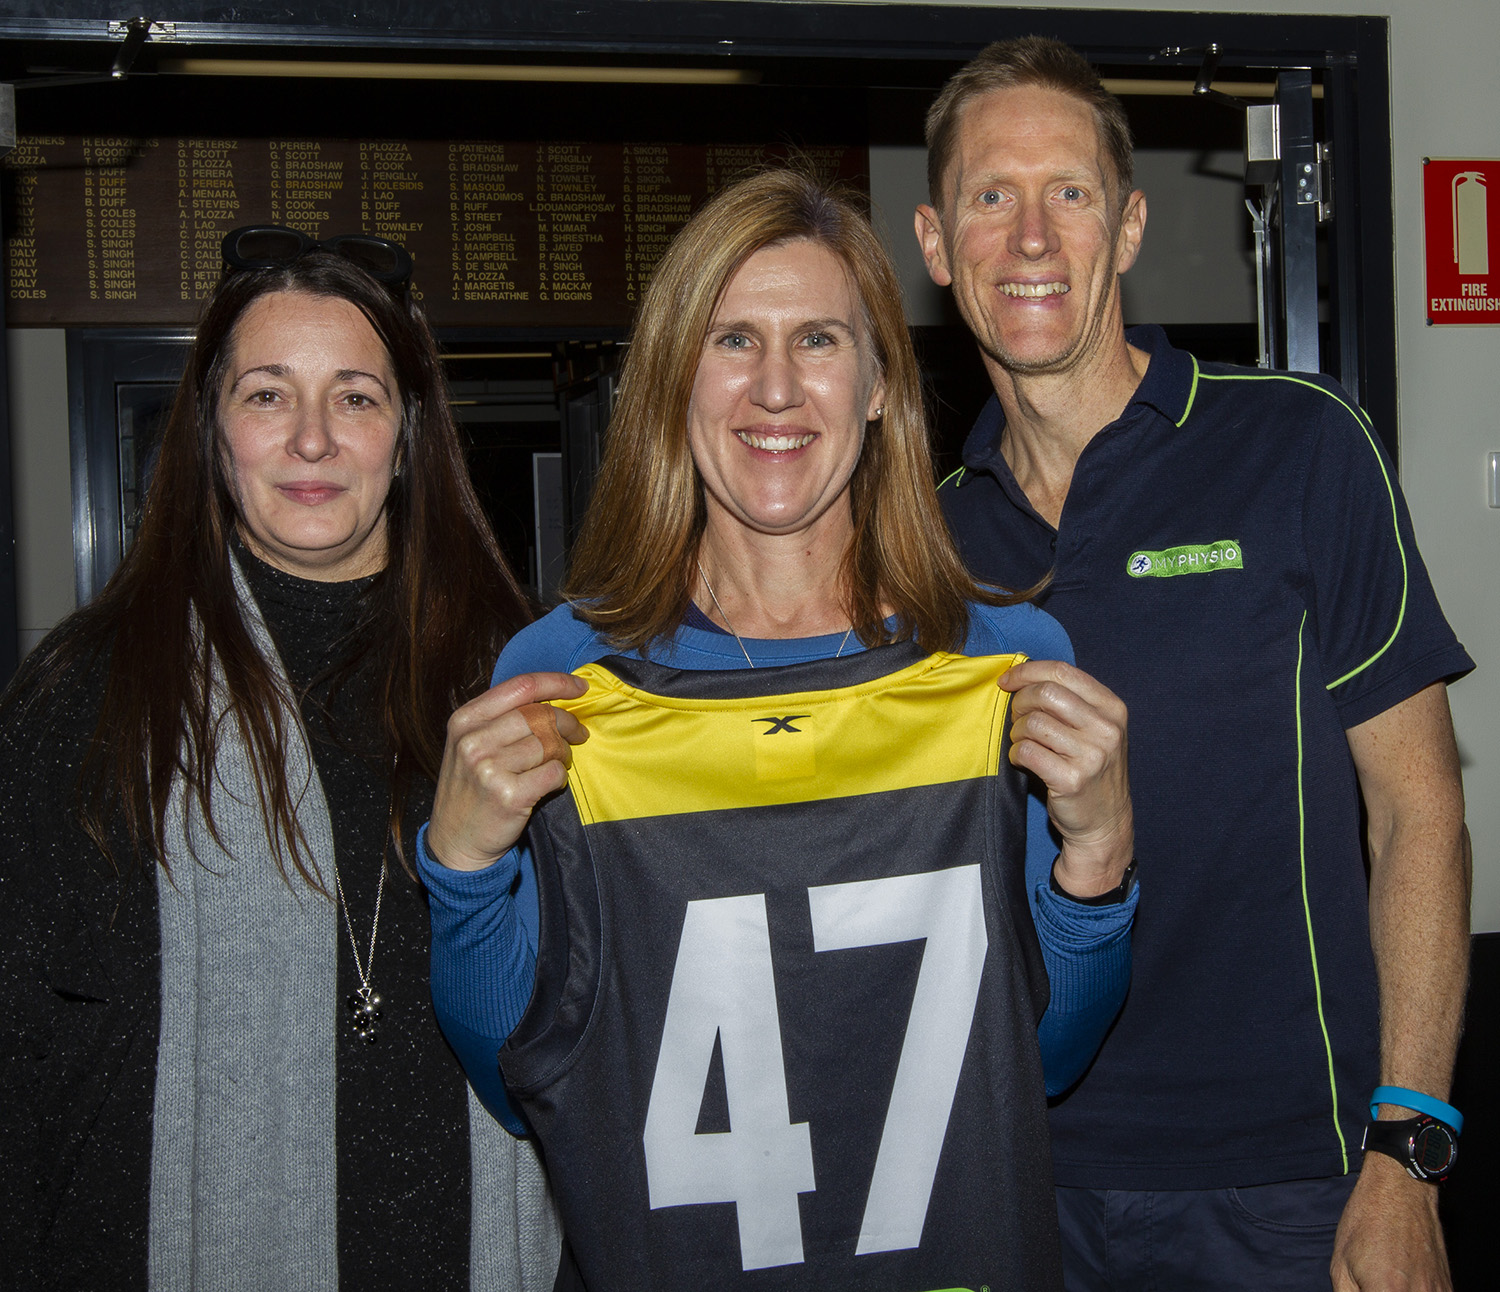 Receiving her jumper at the first presentation night, Robyn Nichols is full of anticipation for the challenging season ahead.